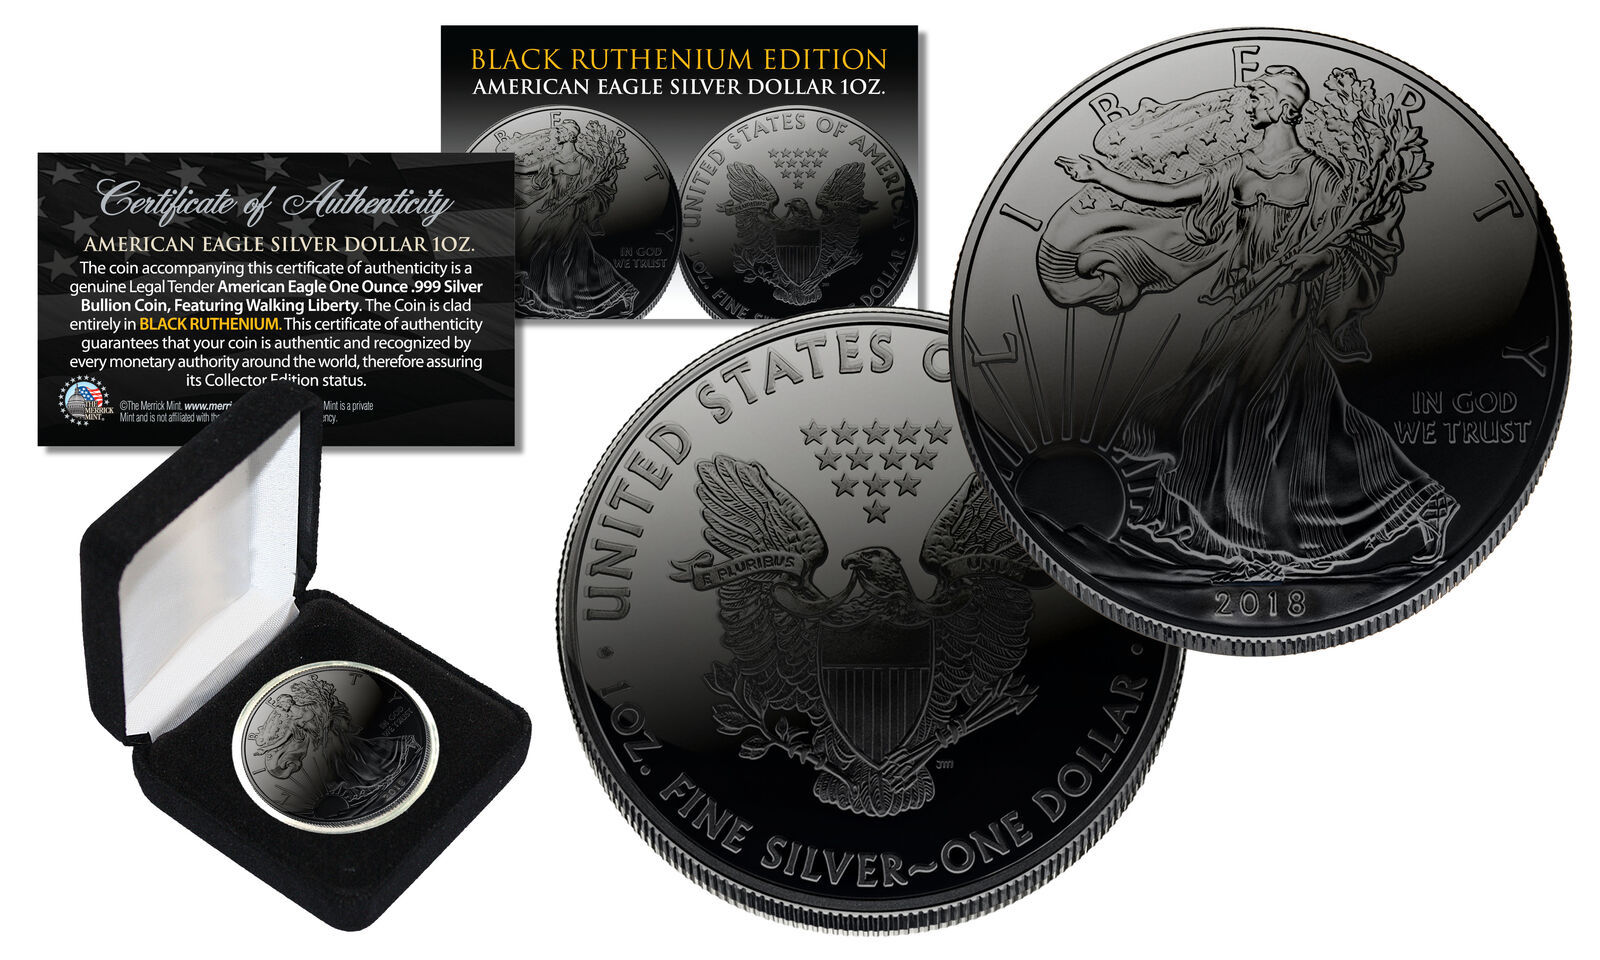 2018 BLACK RUTHENIUM 1 Troy Oz 999 Silver American Eagle Coin with Deluxe Box - $74.76